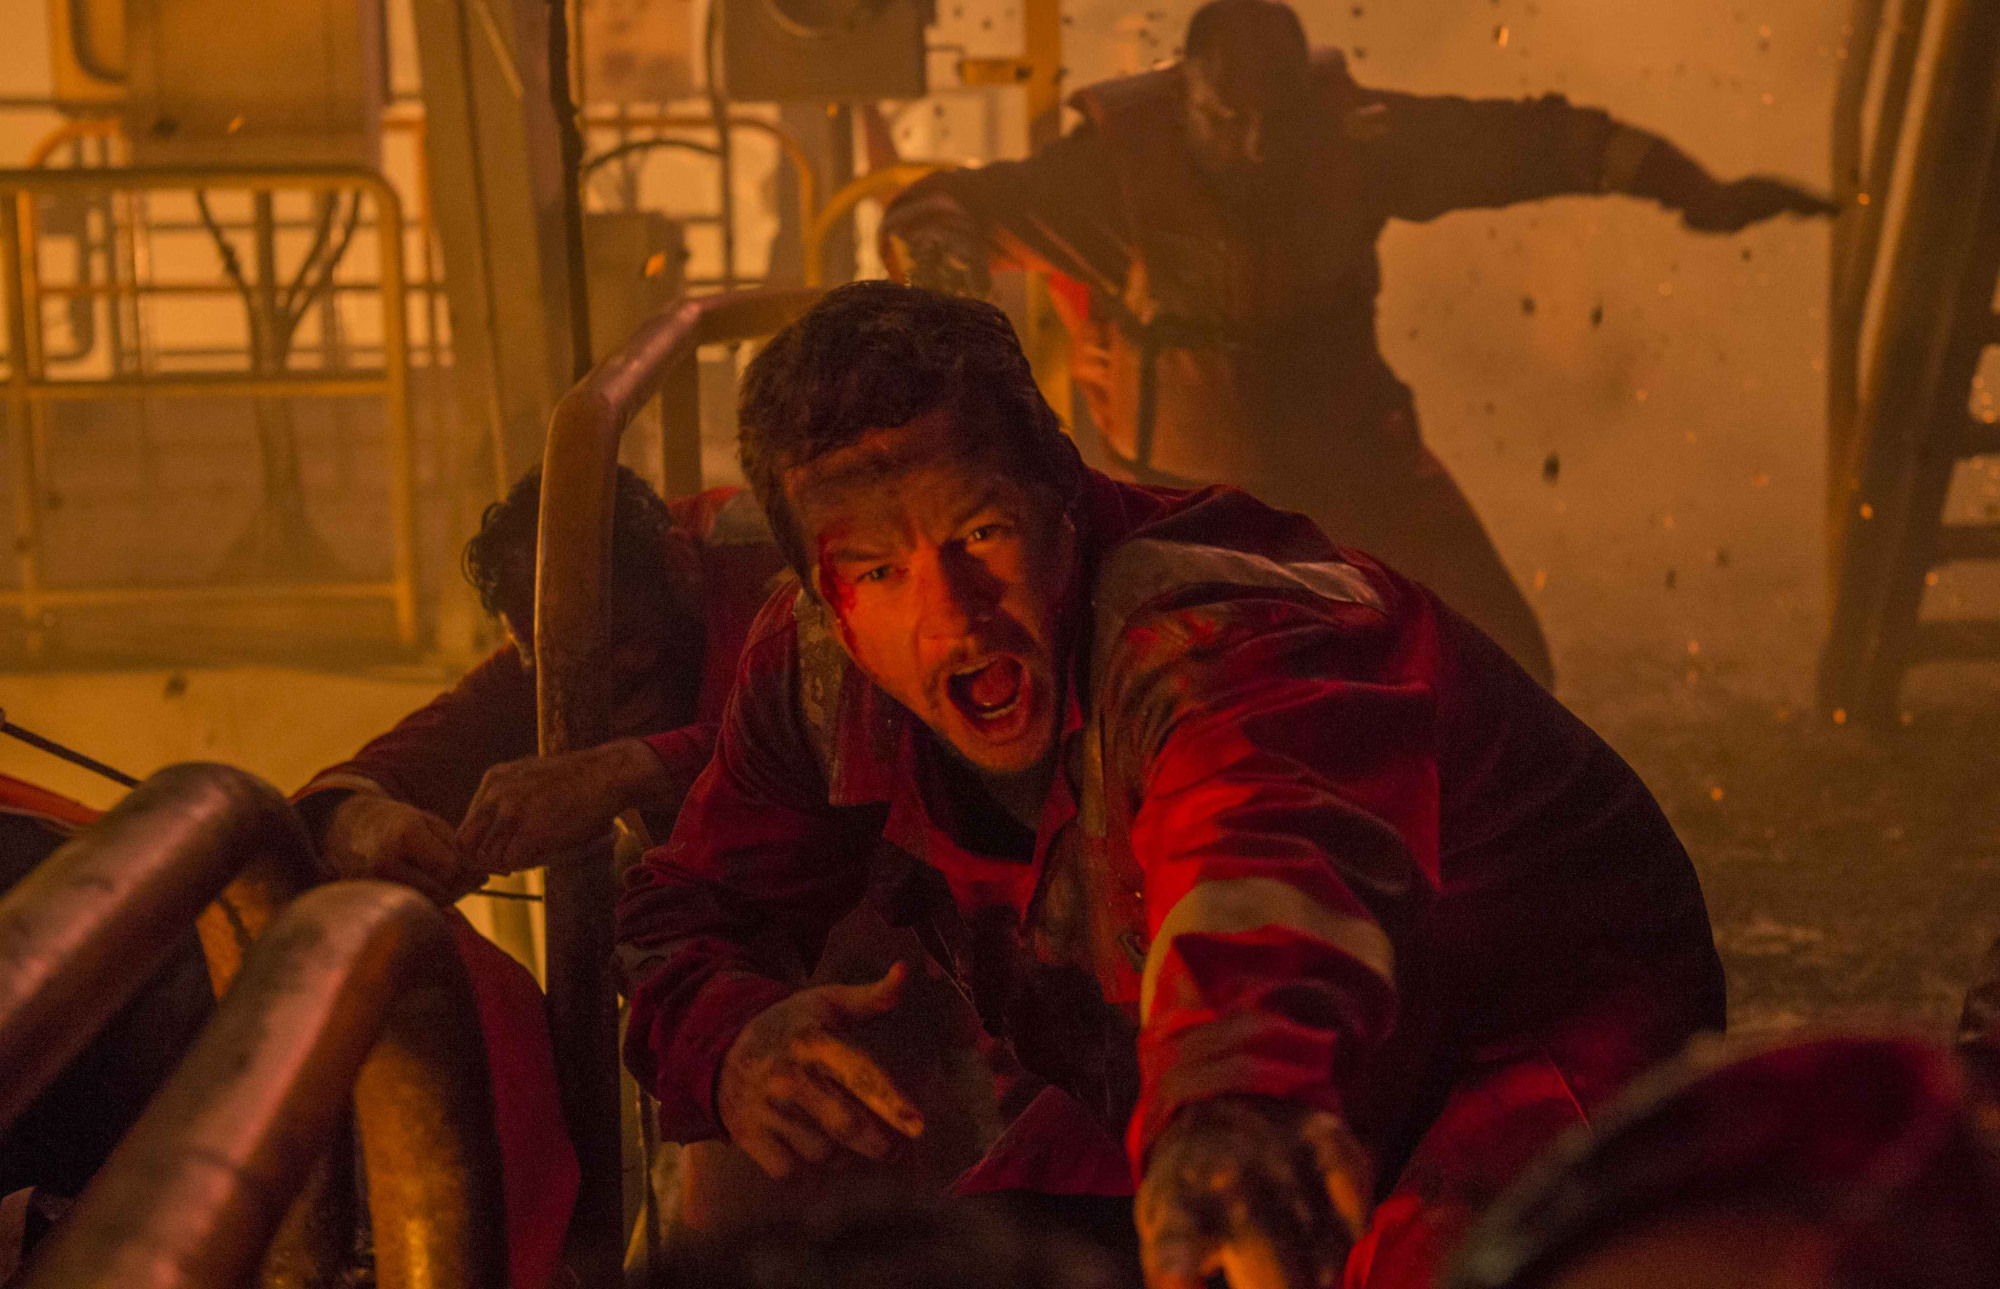 Working-class hero: Mark Wahlberg deals with environmental disaster in 'Deepwater Horizon.' | © 2017 SUMMIT ENTERTAINMENT, LLC. ALL RIGHTS RESERVED